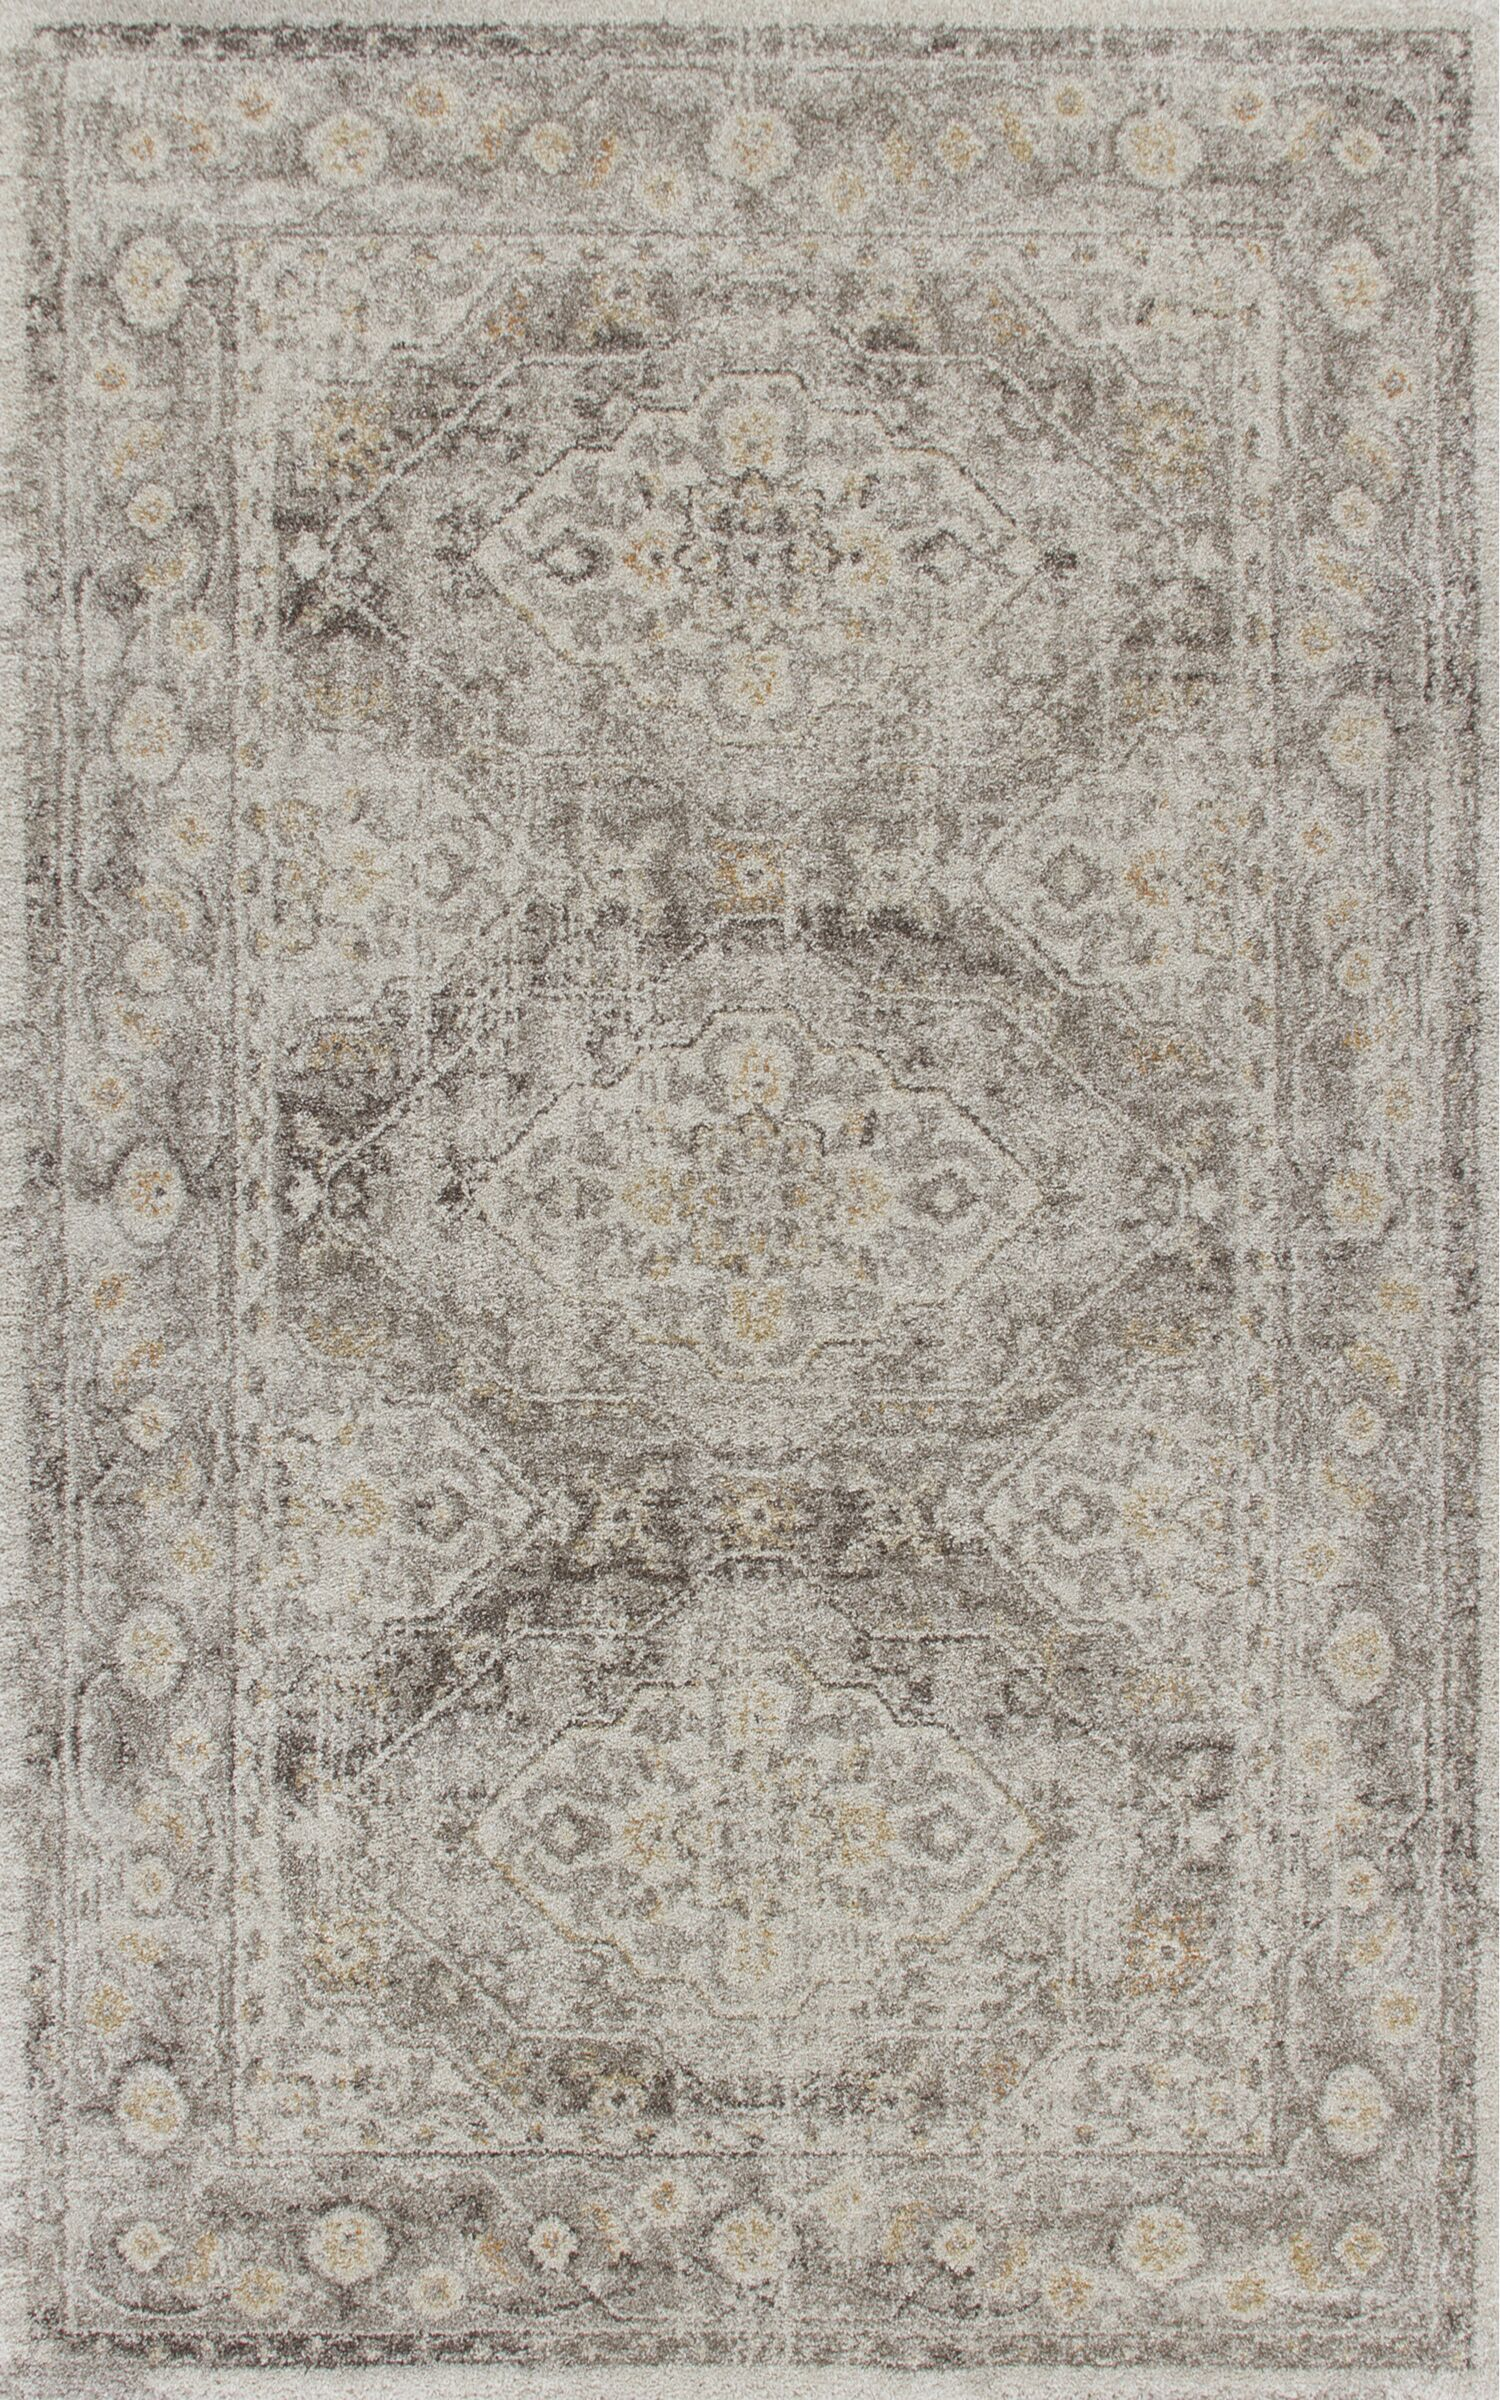 Stonecrest Ivory/Gray Area Rug Rug Size: Rectangle 7'10